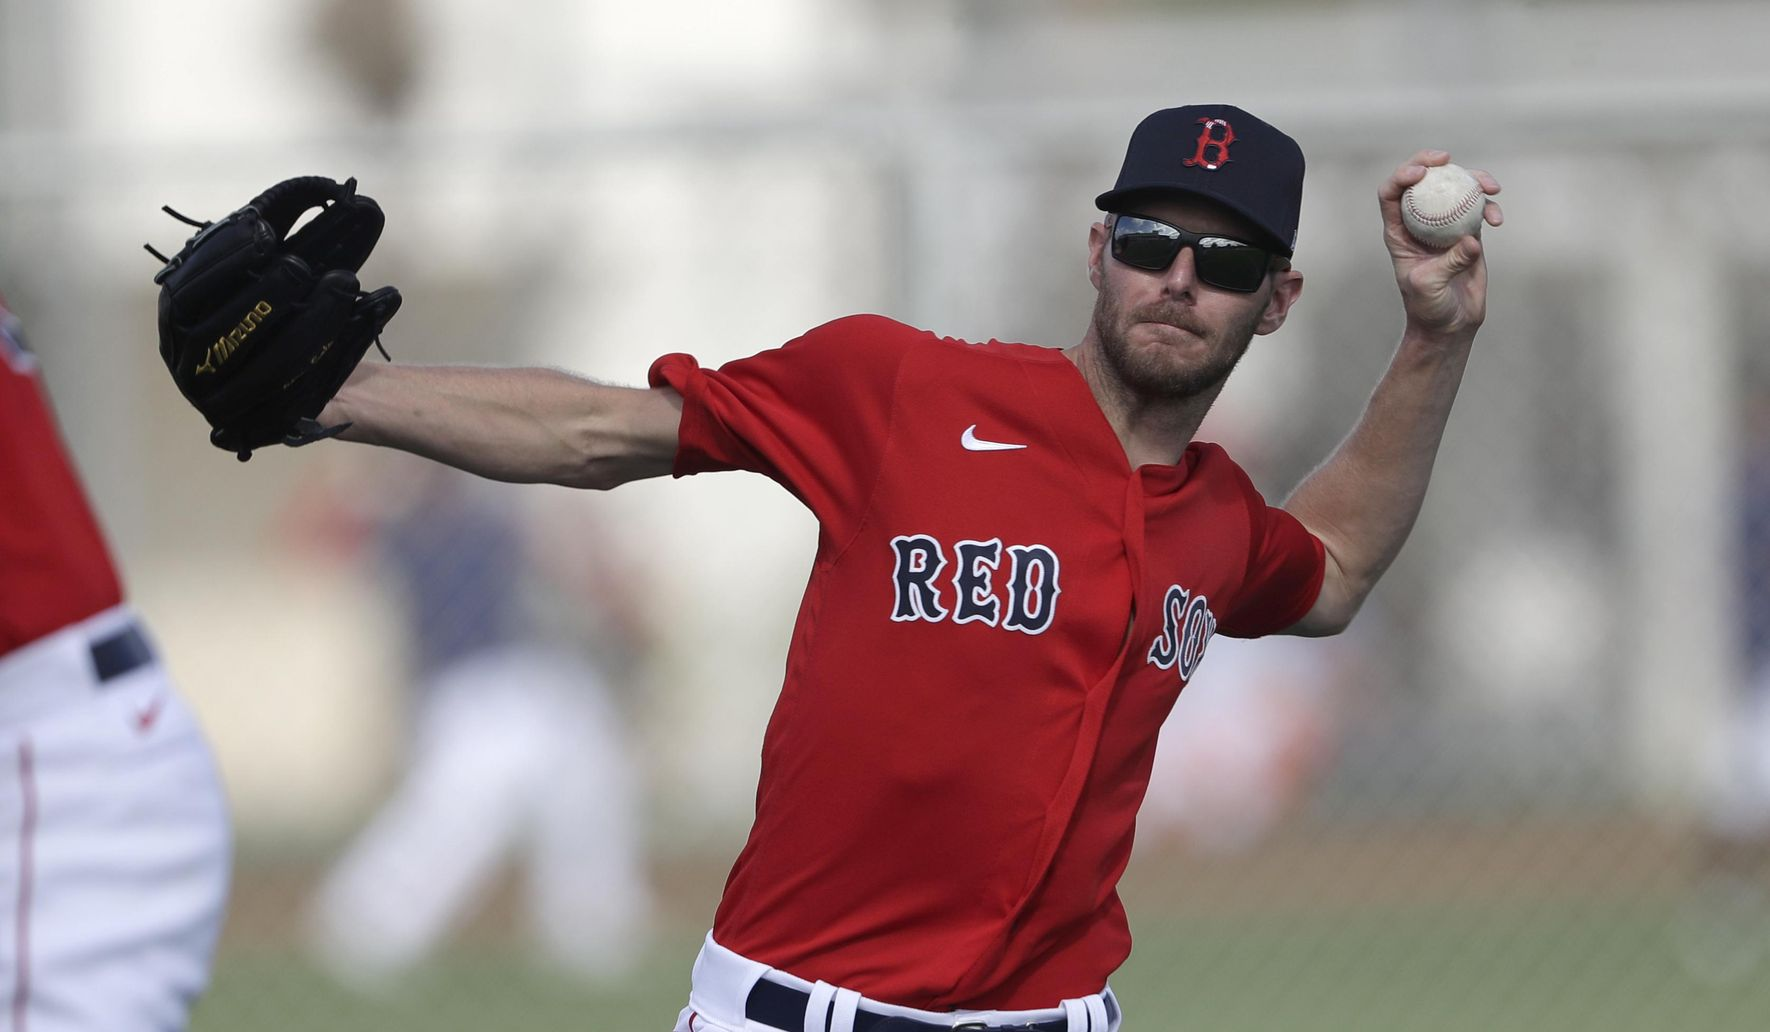 Red_sox_spring_baseball_45369_c0-140-3352-2094_s1770x1032